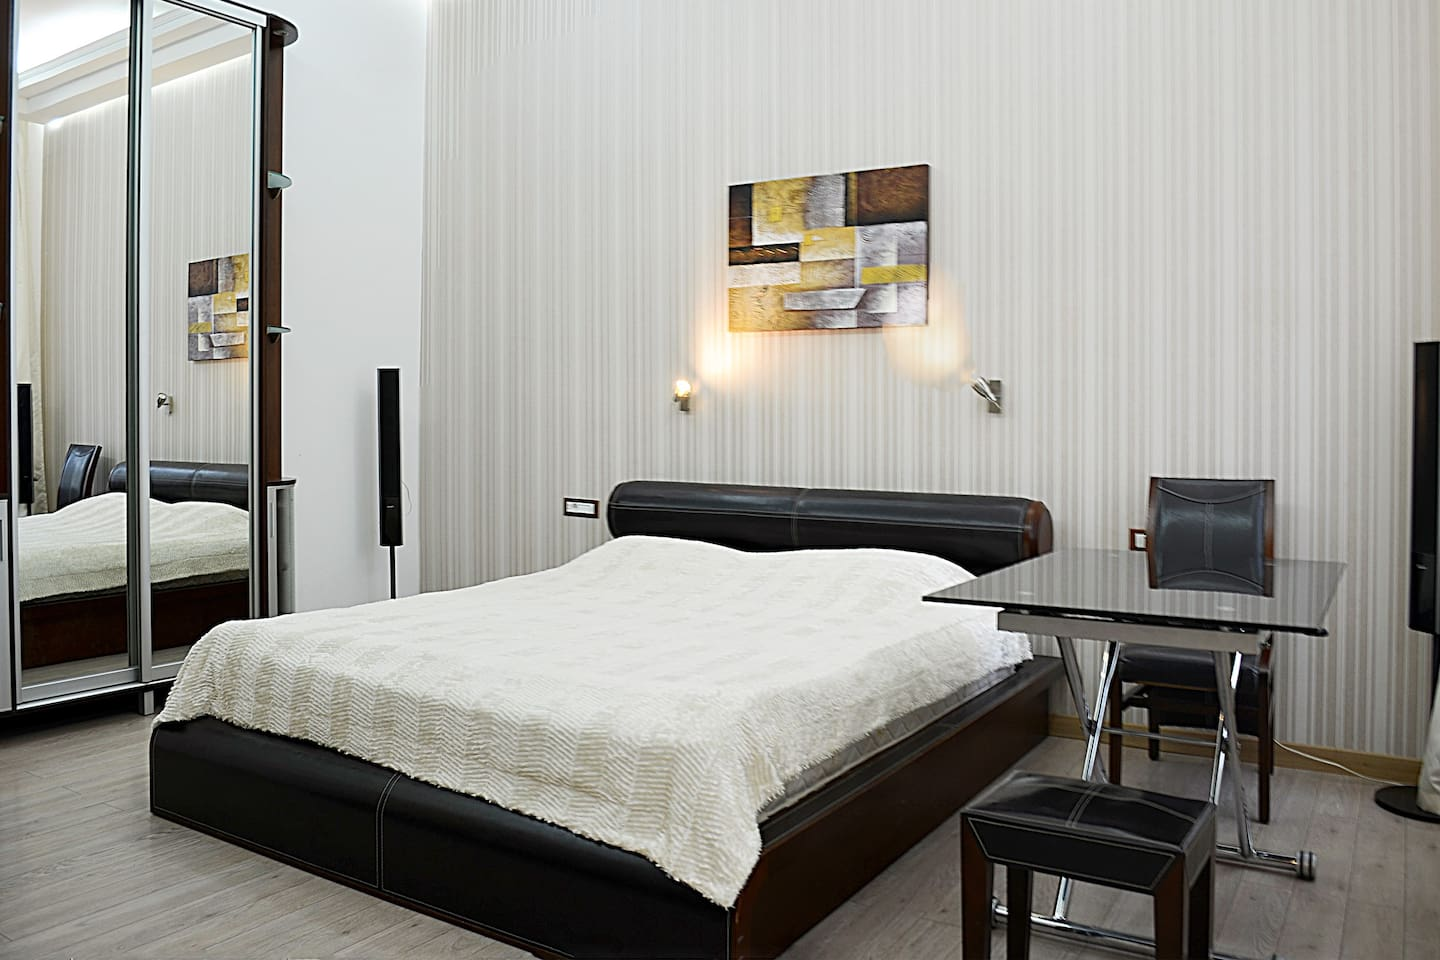 Quiet apartment with a good bed!